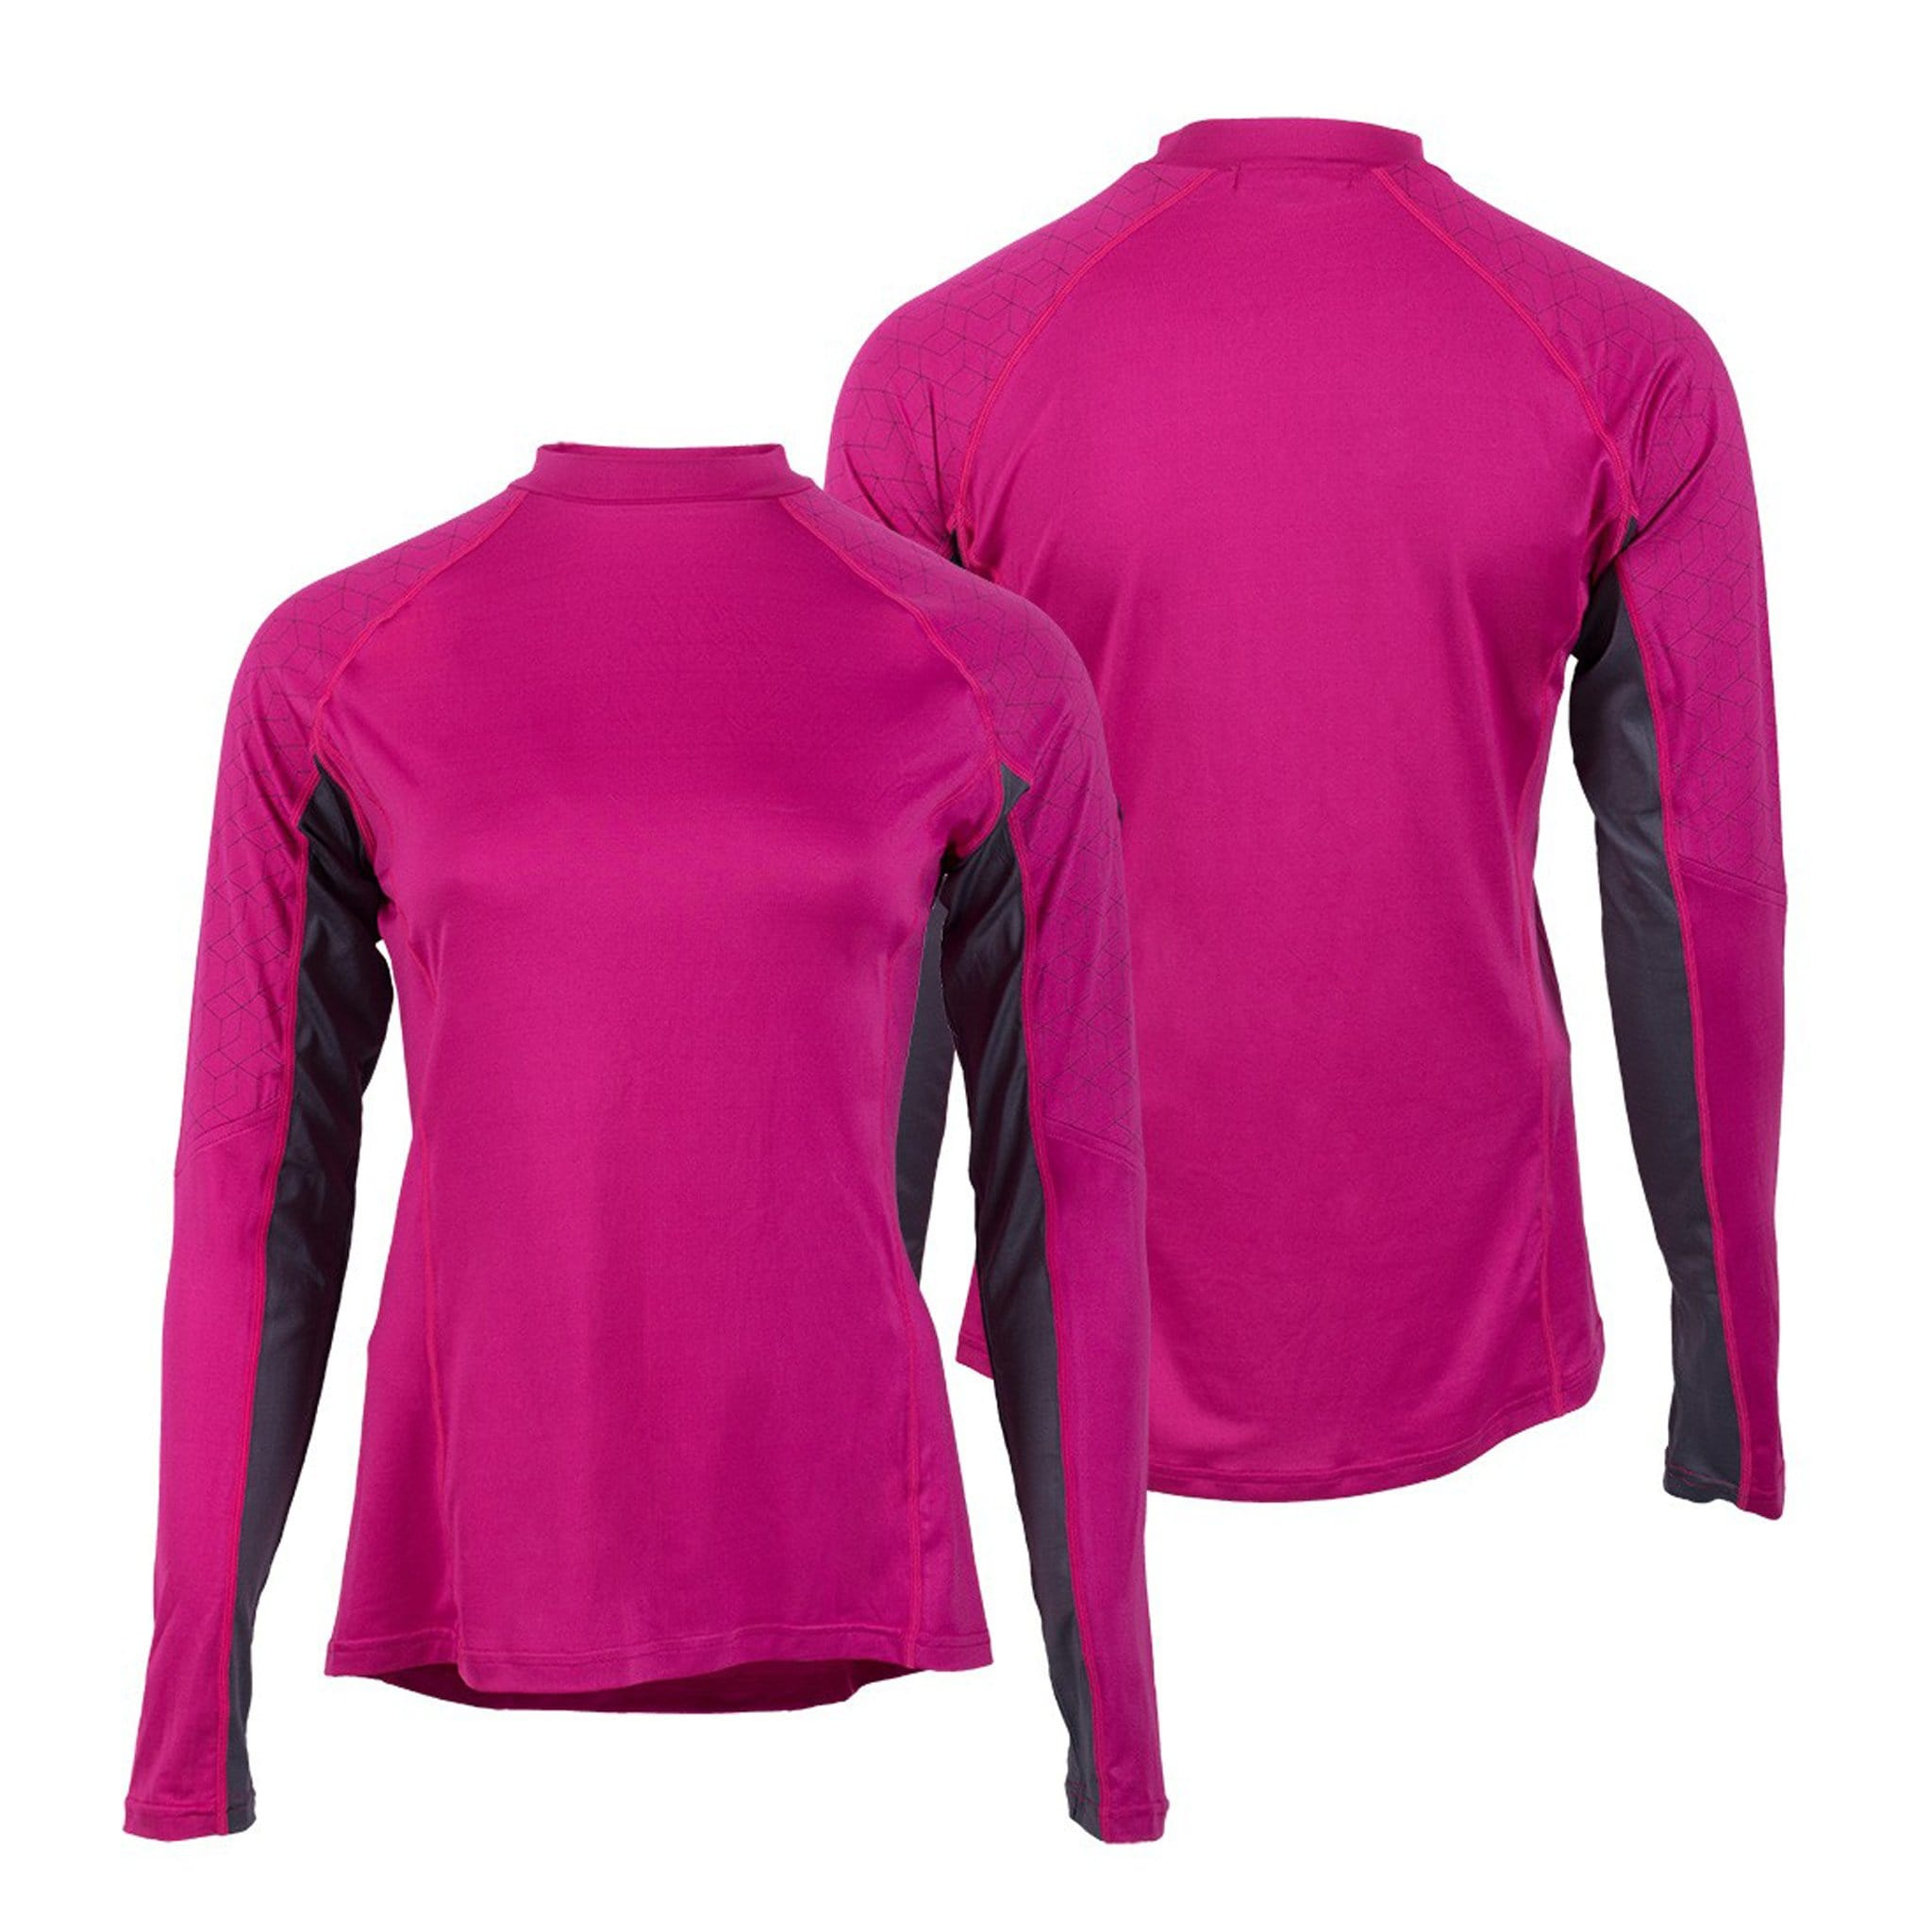 QHP Children's Eldorado Contrast Base Layer 8314 Pink Front and Back